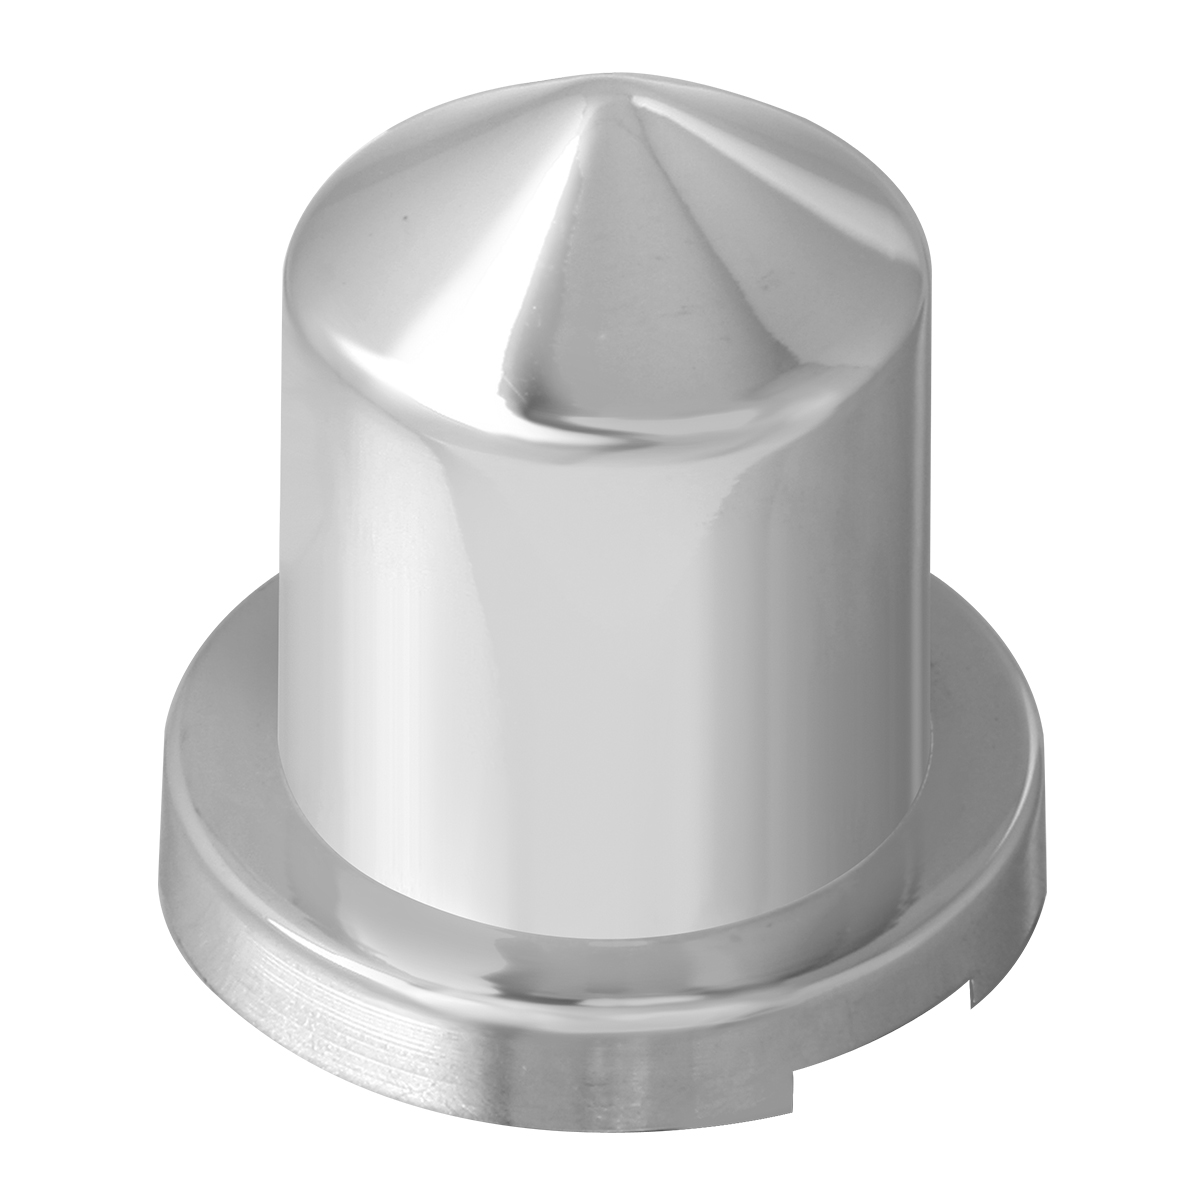 "Chrome Plastic ⅝"" & 15 mm Push-On Multi-Size Round Pointed Lug Nut Cover"